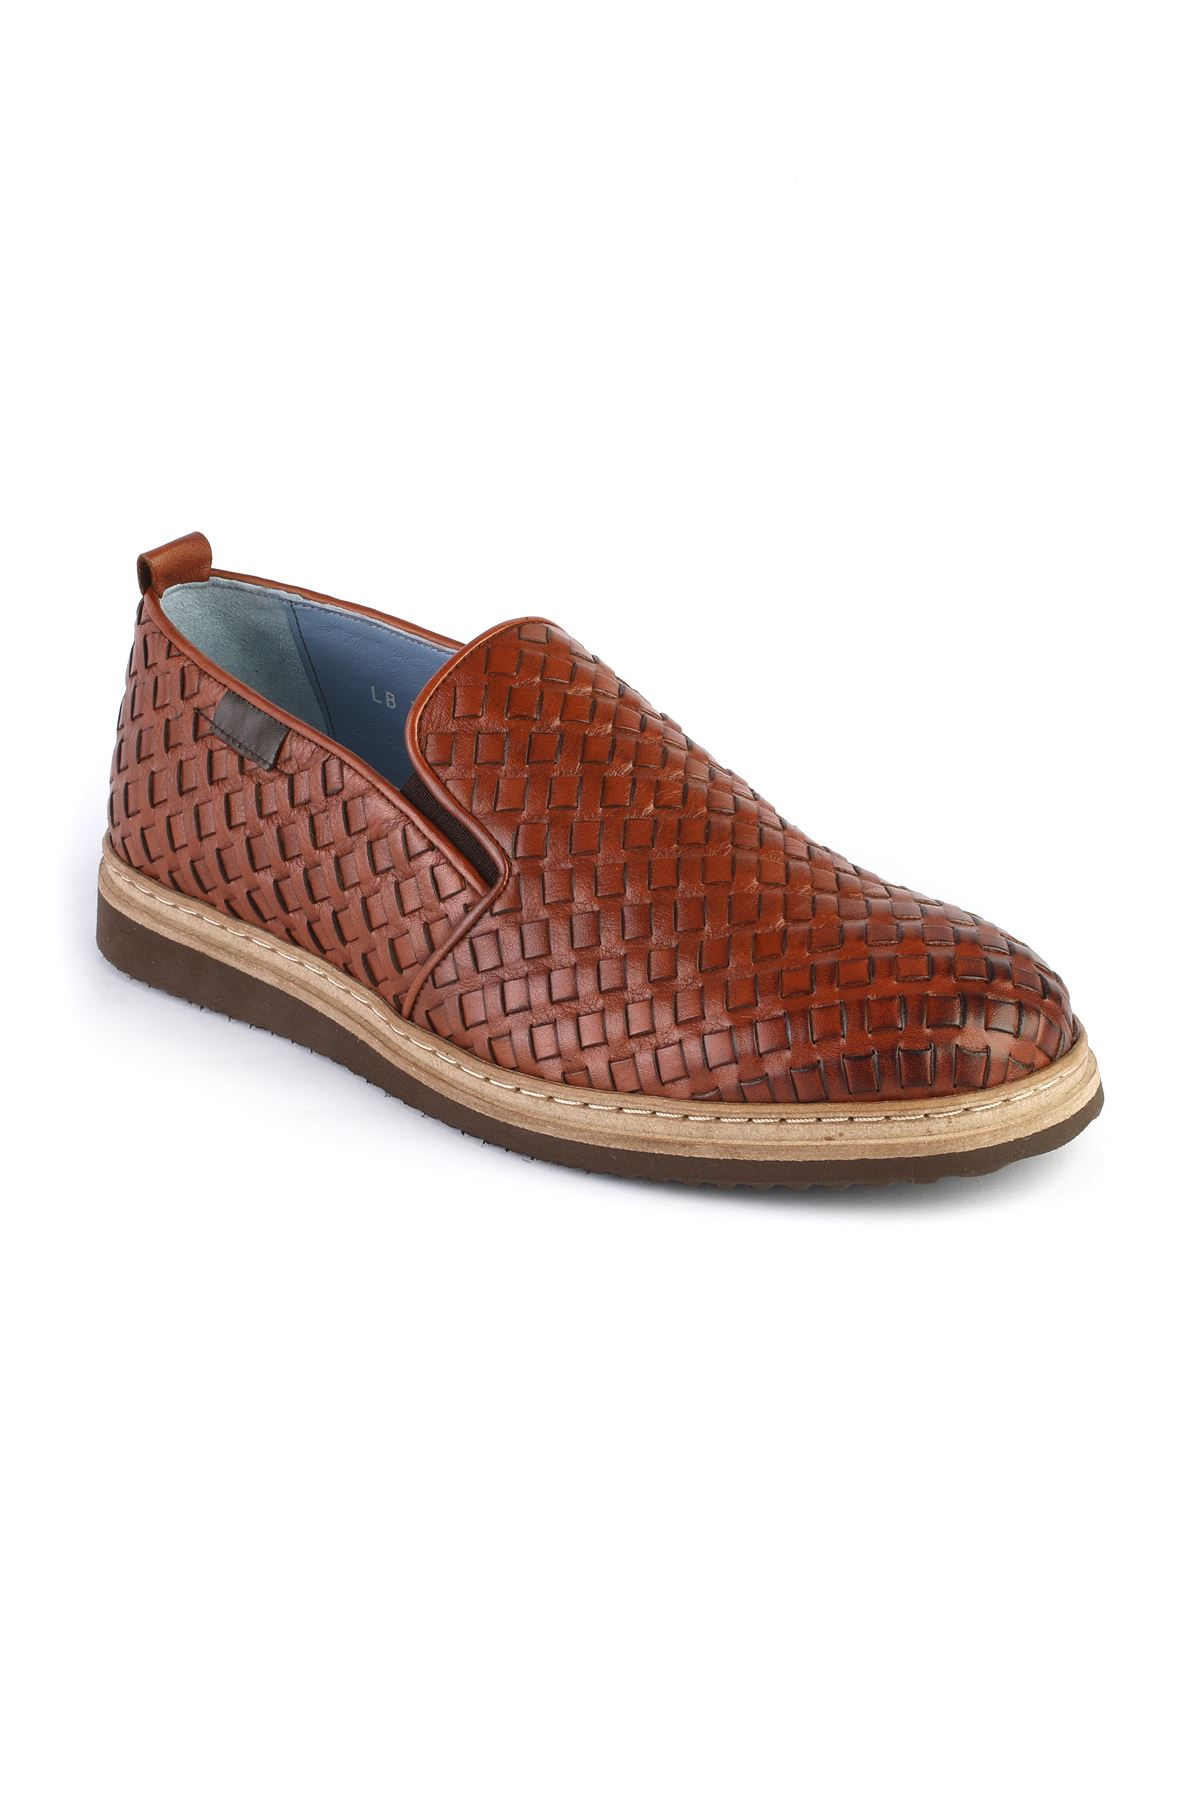 Libero 3295 Tan Loafer Shoes